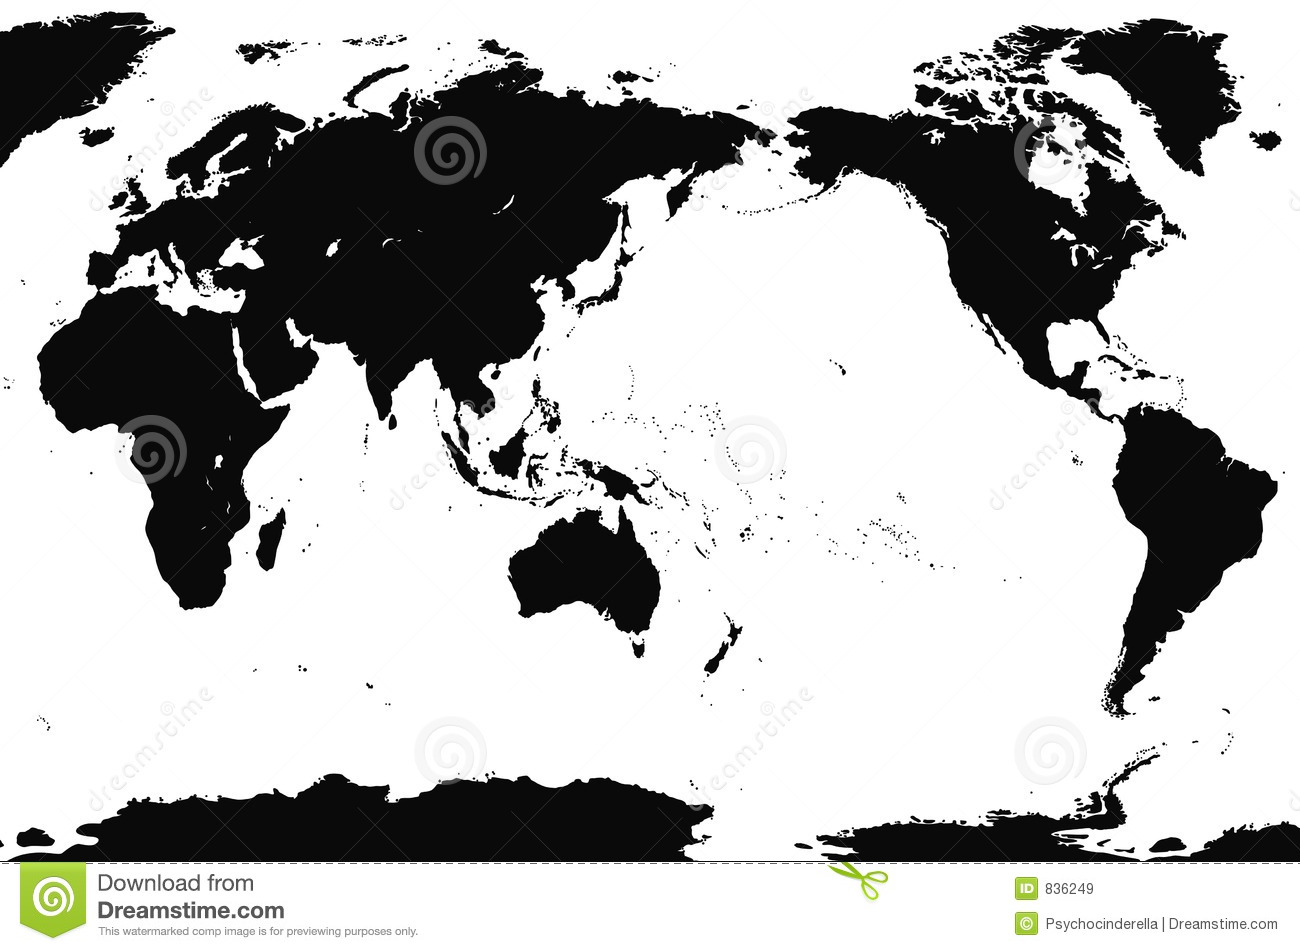 Zwart Wit Wereldkaart Accurate World Map Detailed Royalty Free Stock Images